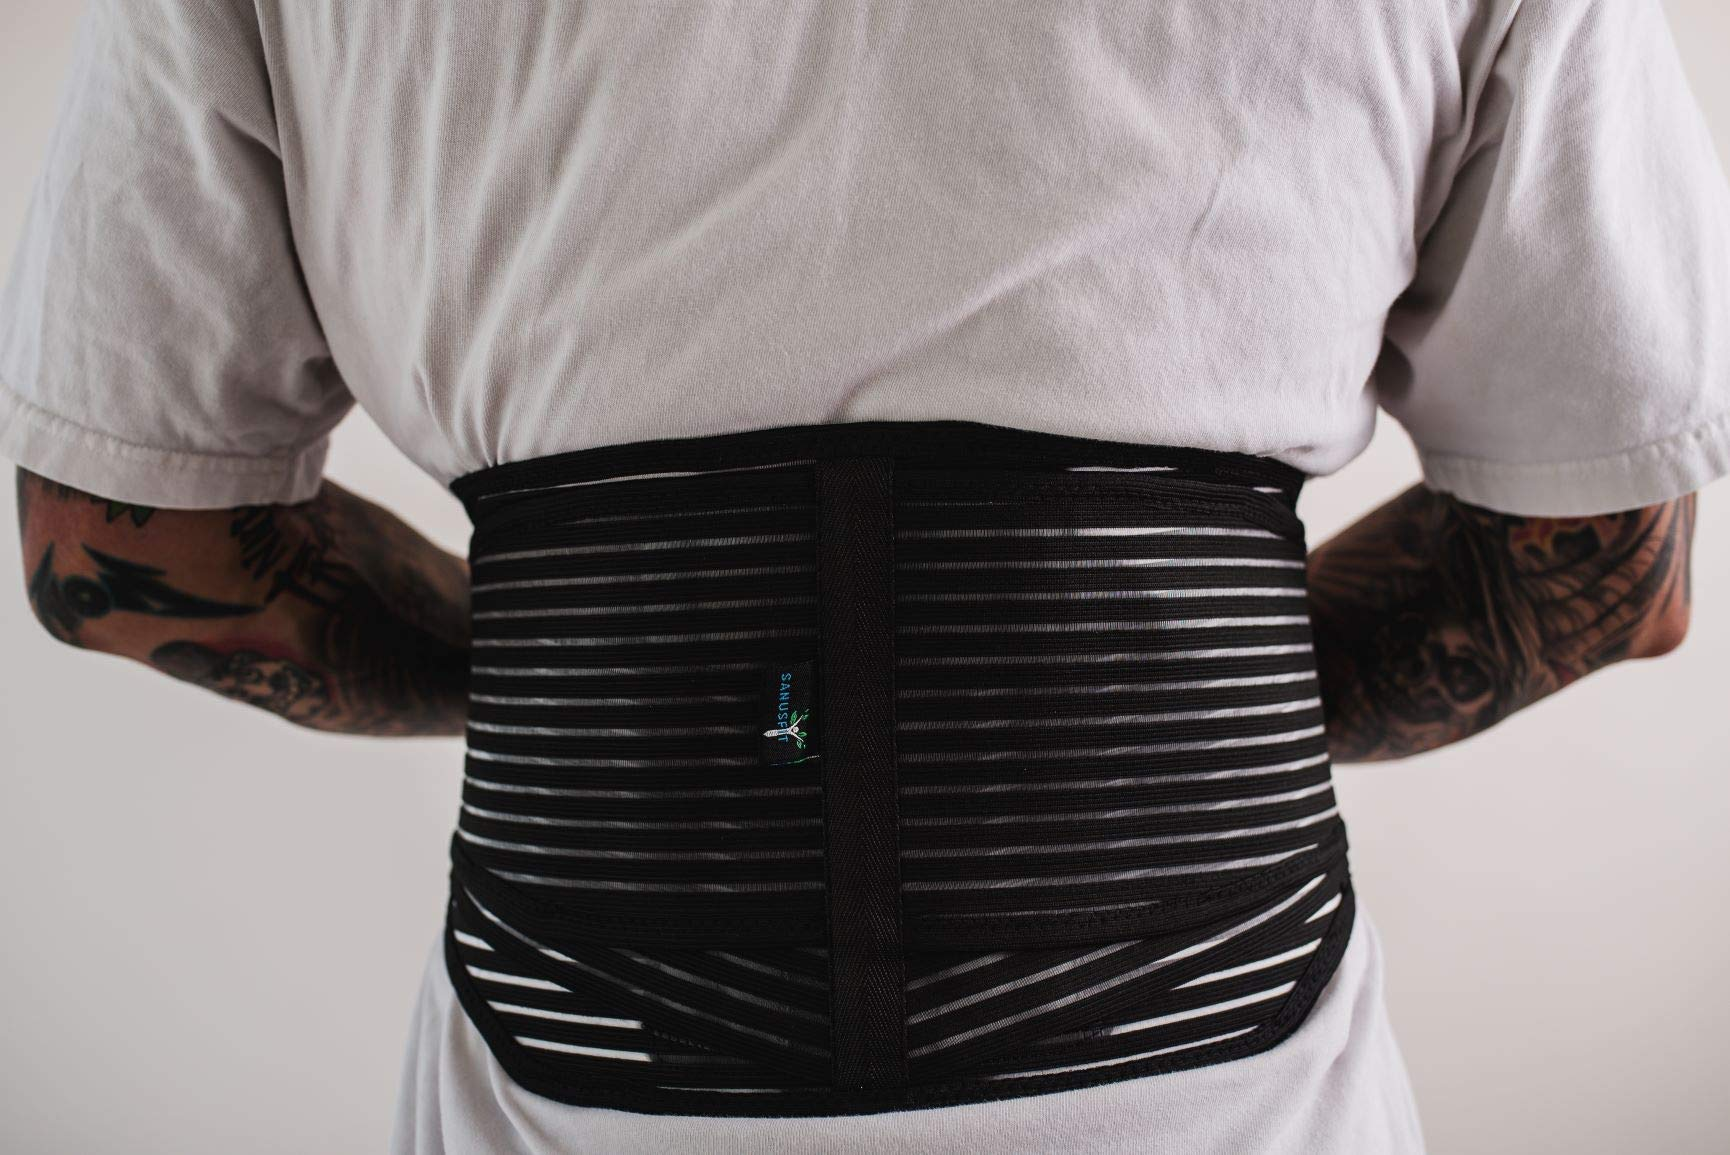 Back Brace with Lumbar Pad, Lumbar Support Brace, Lower Back Wrap, Back Pain Relief, Adjustable Compression Straps, Back Support Brace, Additional Lumbar Pad Included - SANUSFIT (Extra Large)